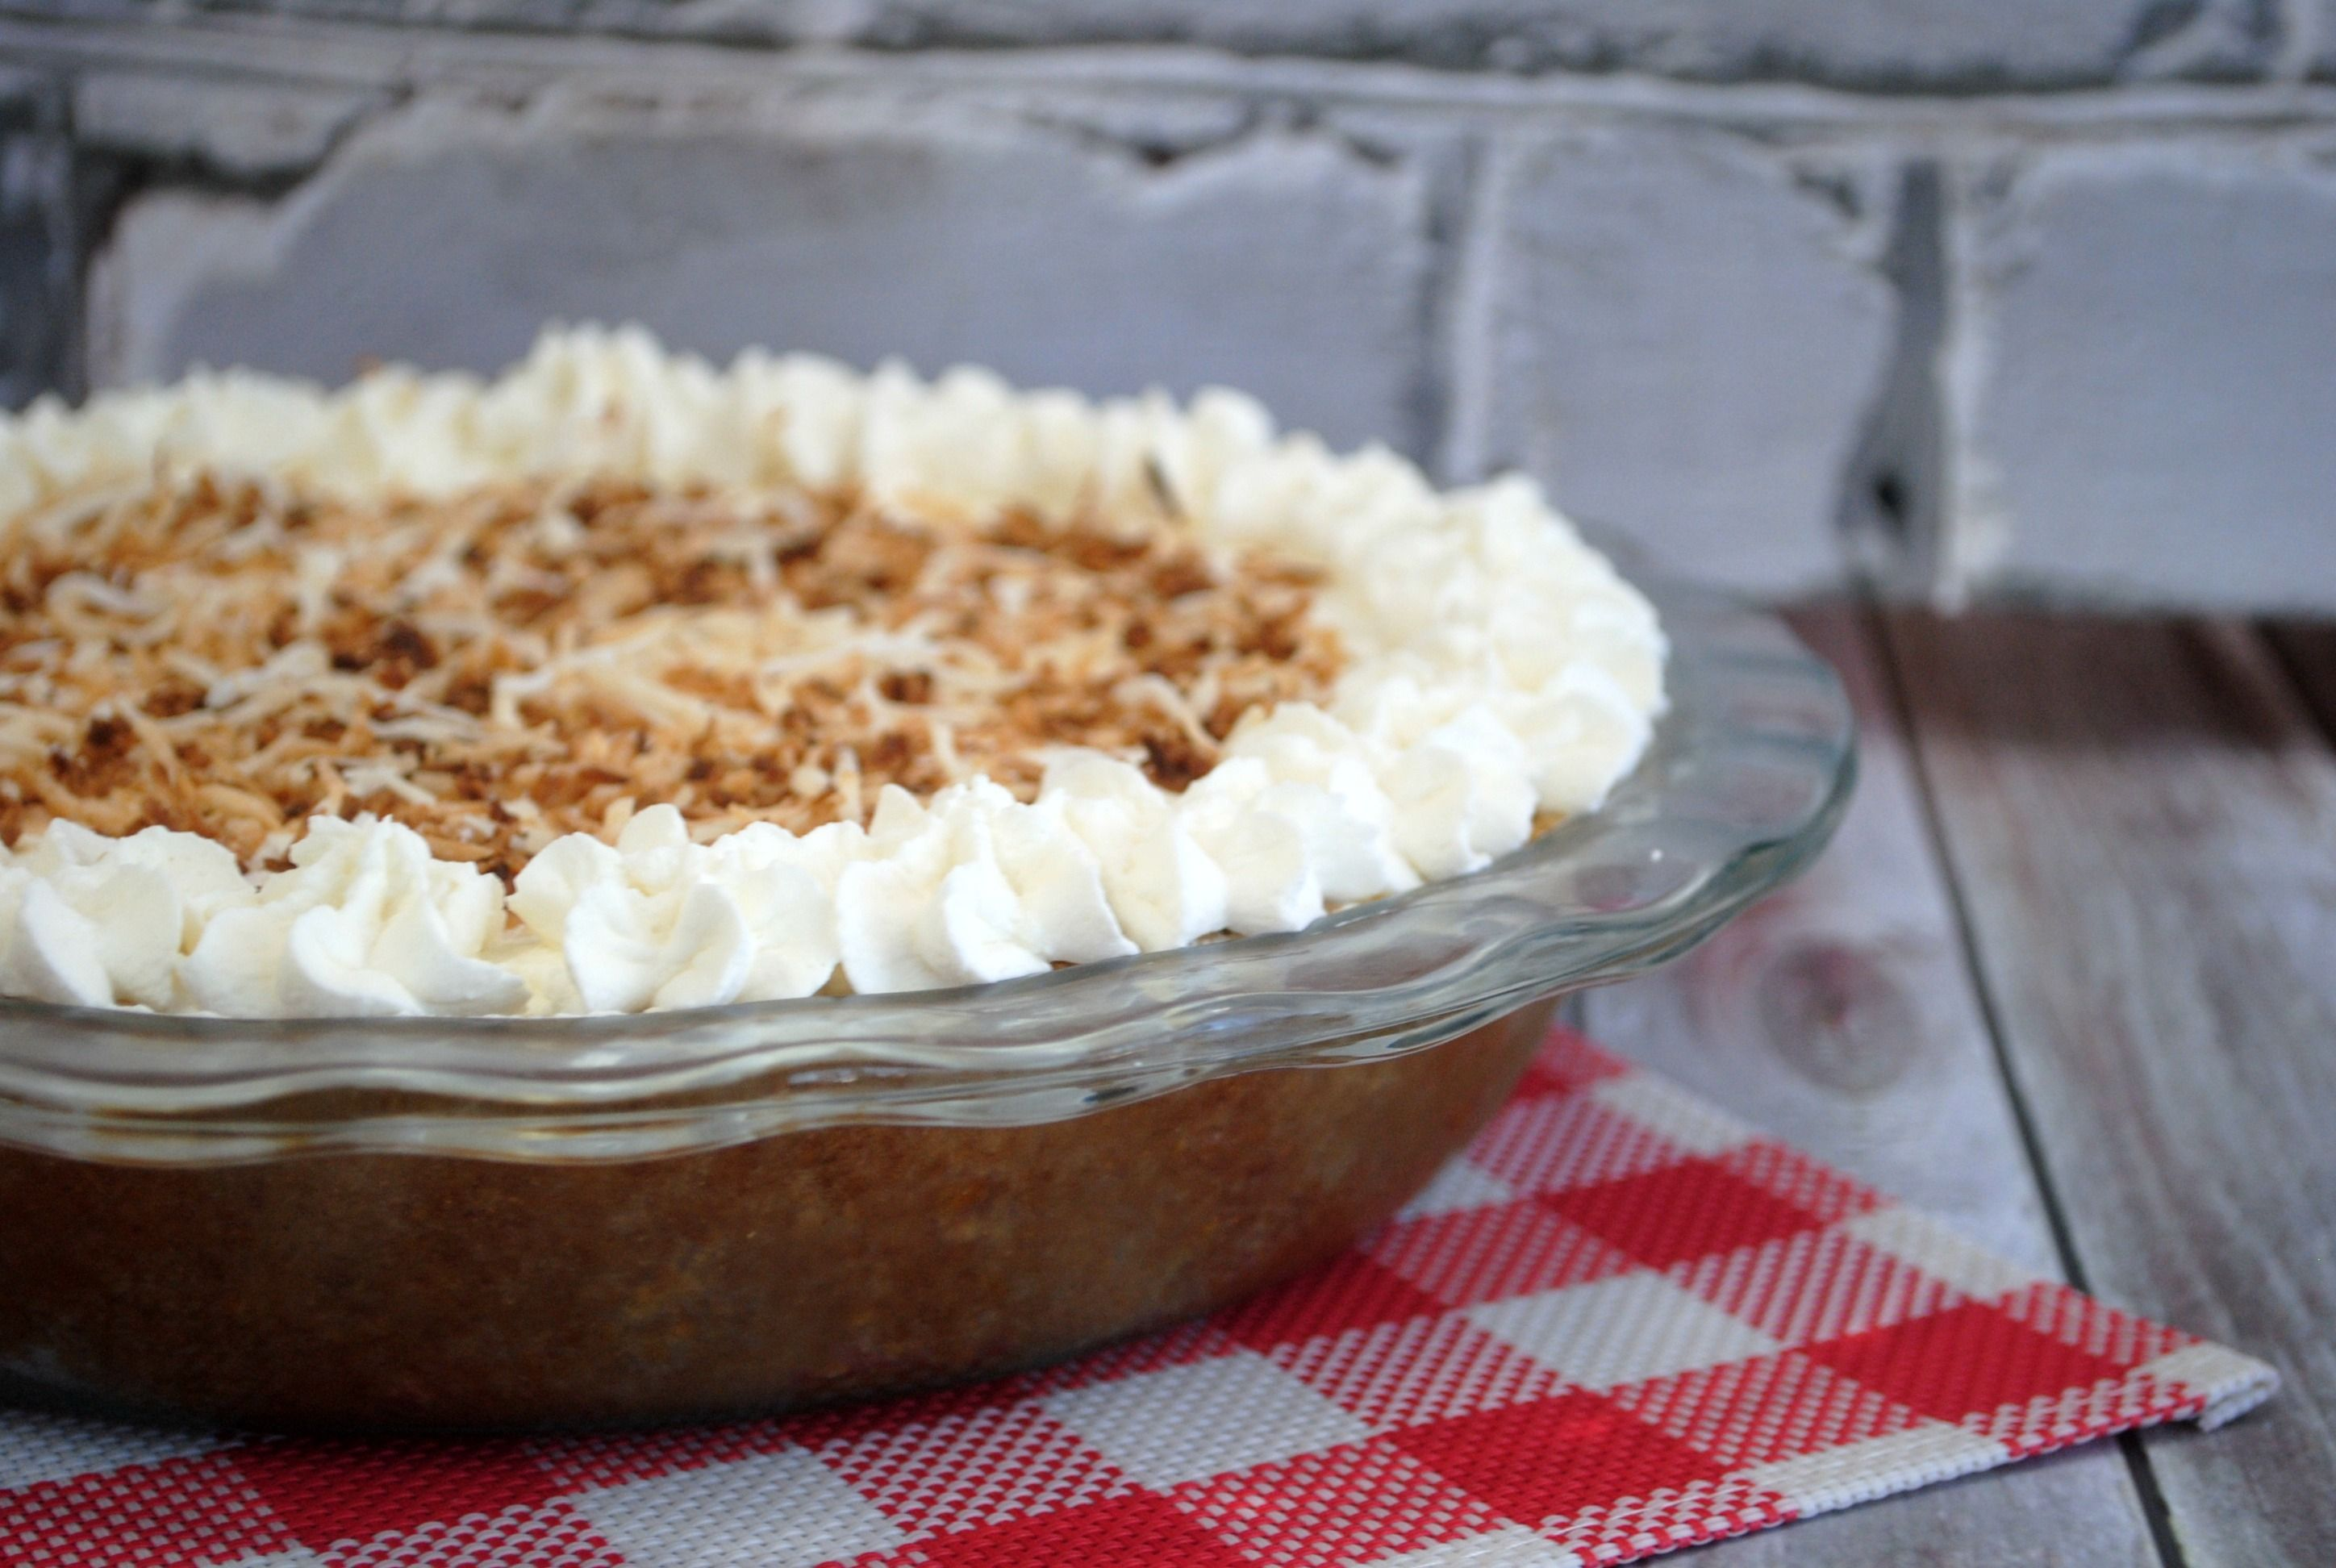 The homemade pie crust, whip cream and filling on this luscious homemade banana cream pie is a winning combination. Snag this homemade recipe!